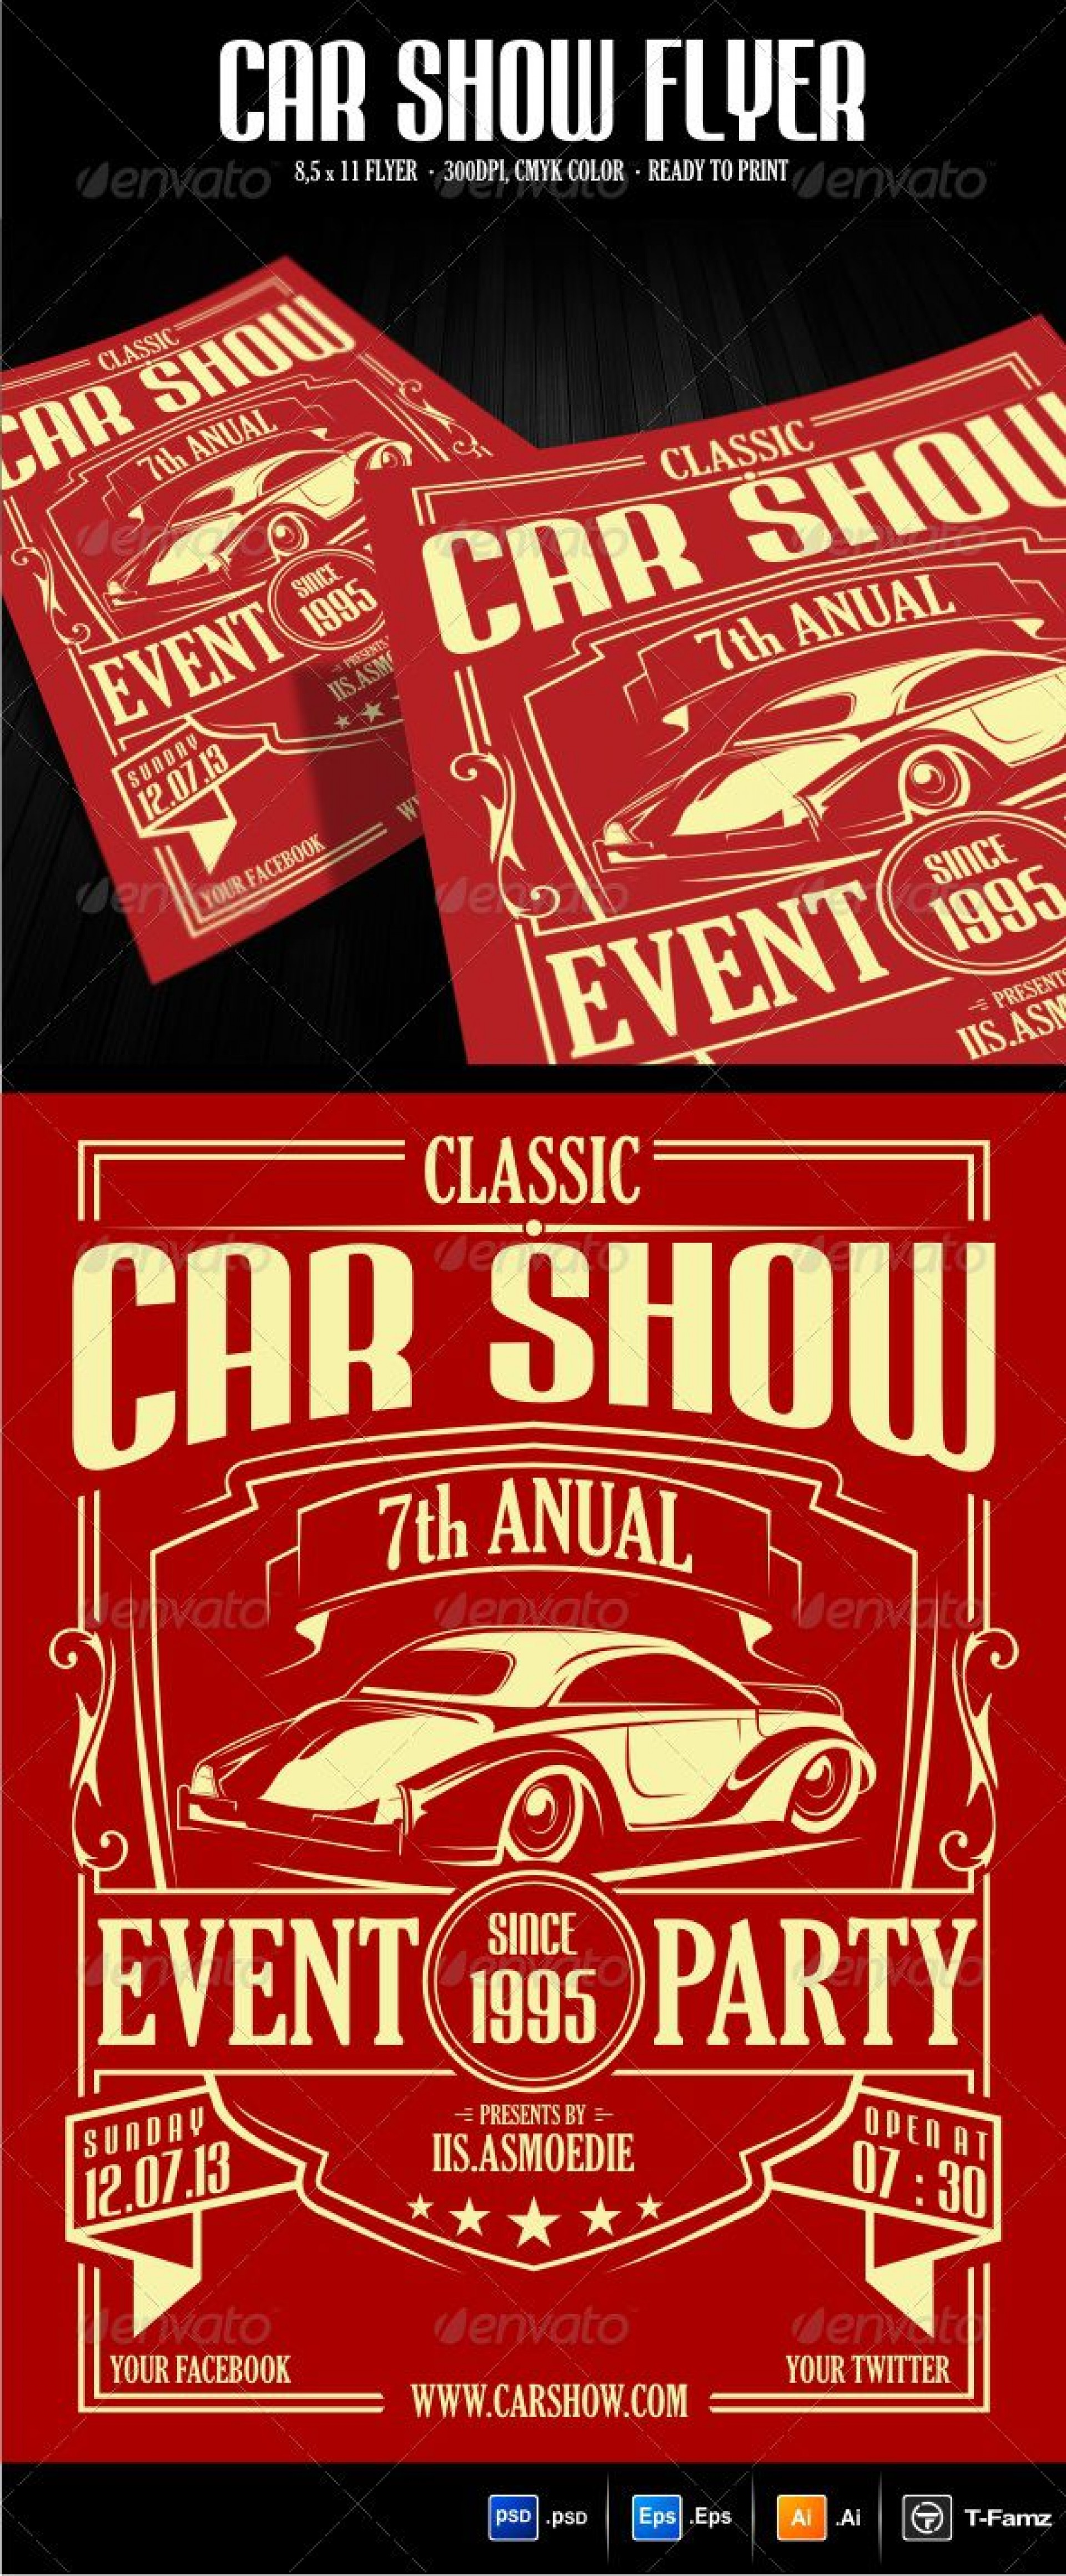 001 Unique Free Car Show Flyer Template Sample  Psd And Bike1920